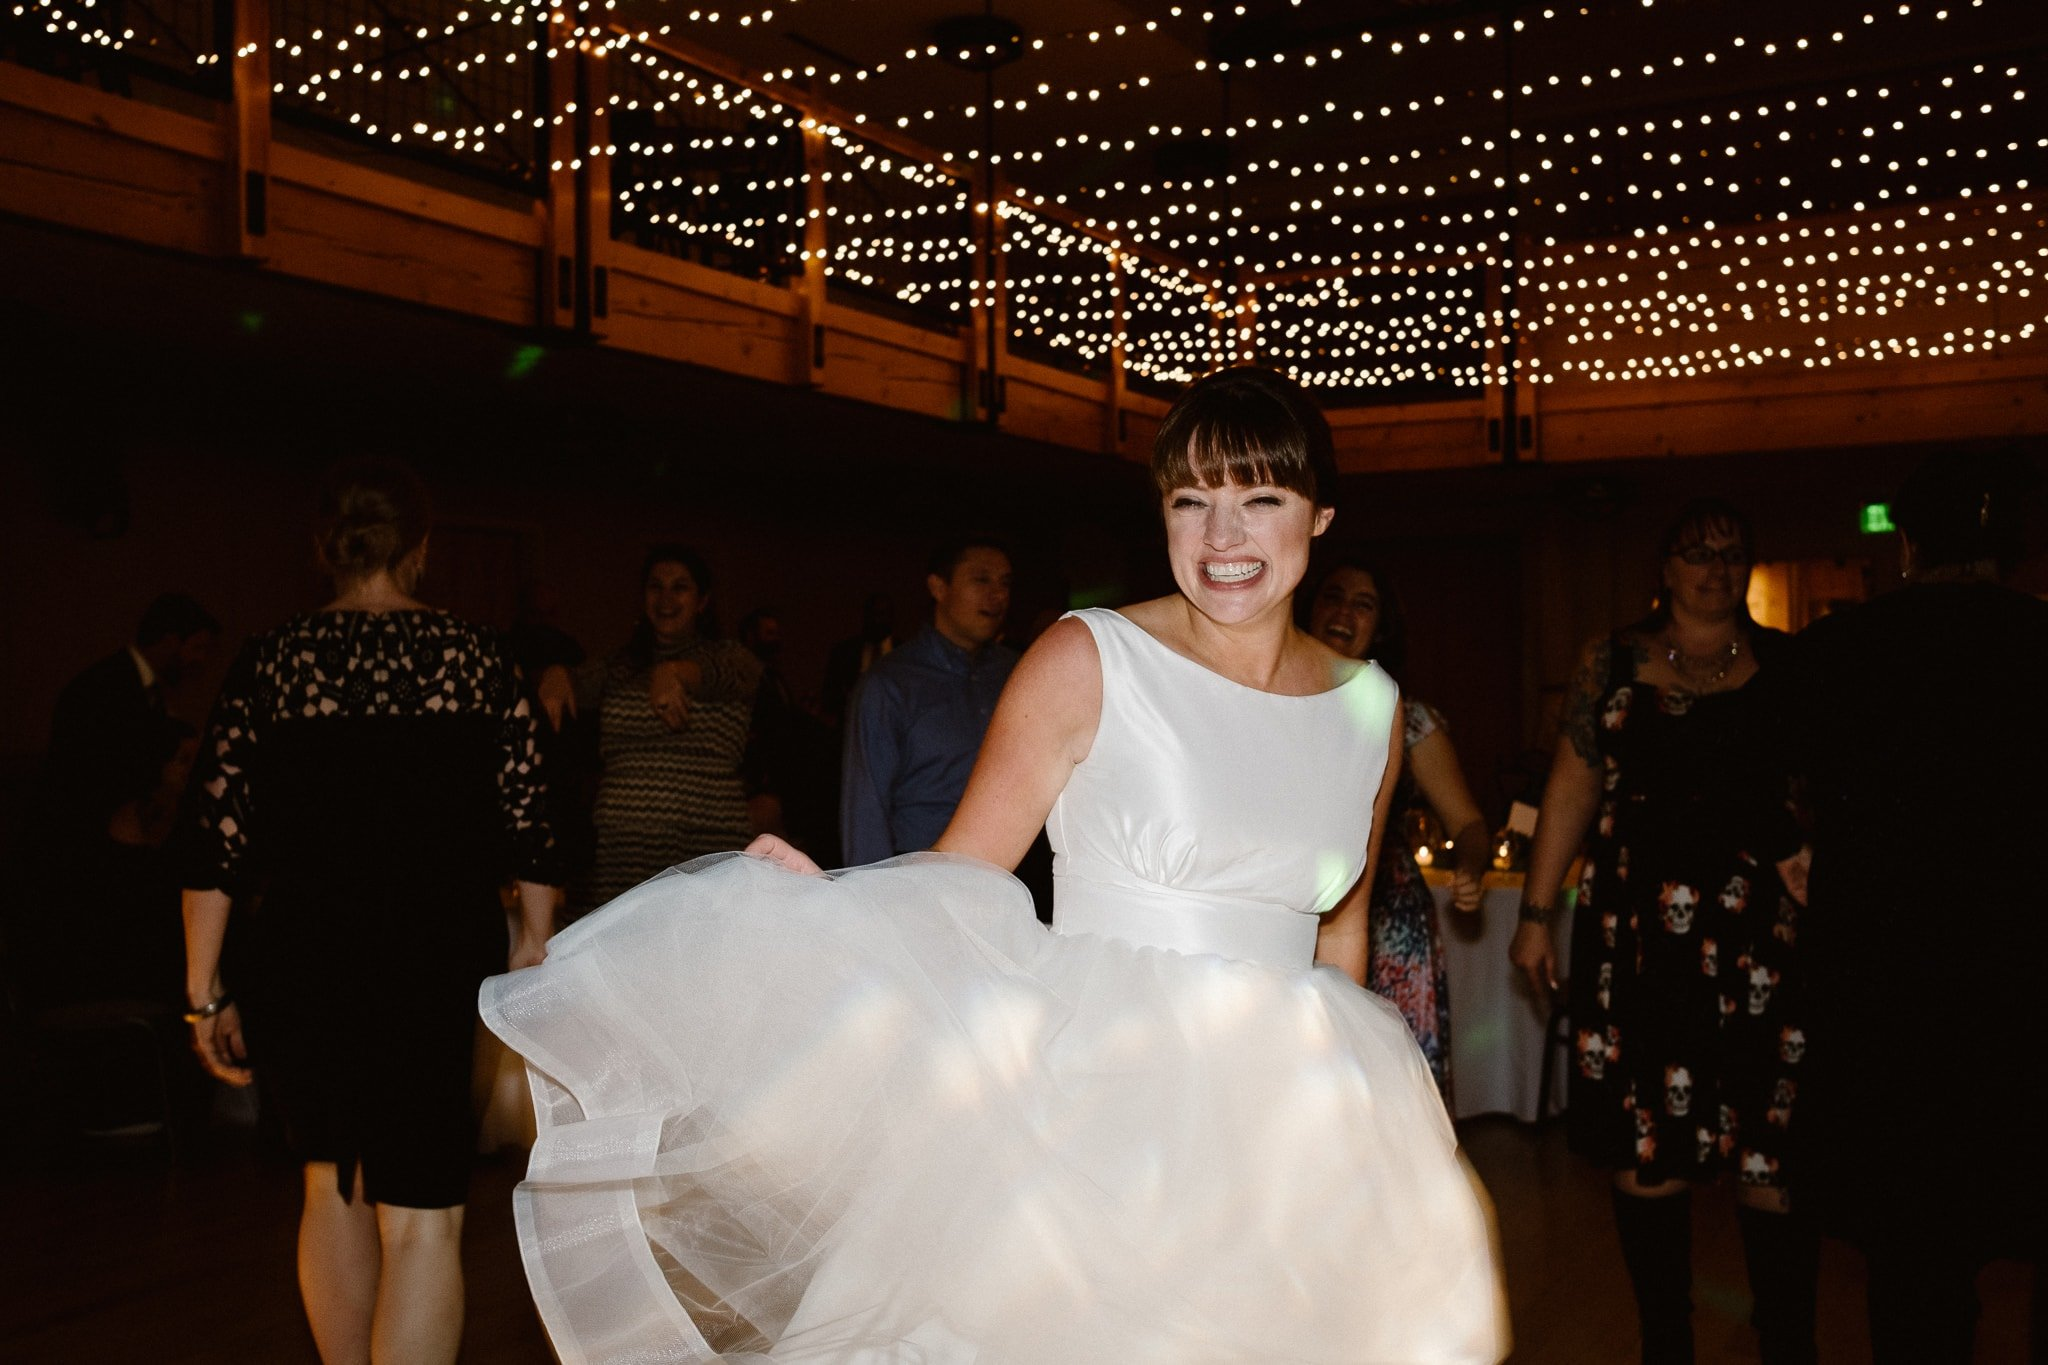 Silverthorne Pavilion wedding photography, Colorado wedding photographer, wedding reception dance party, bride dancing